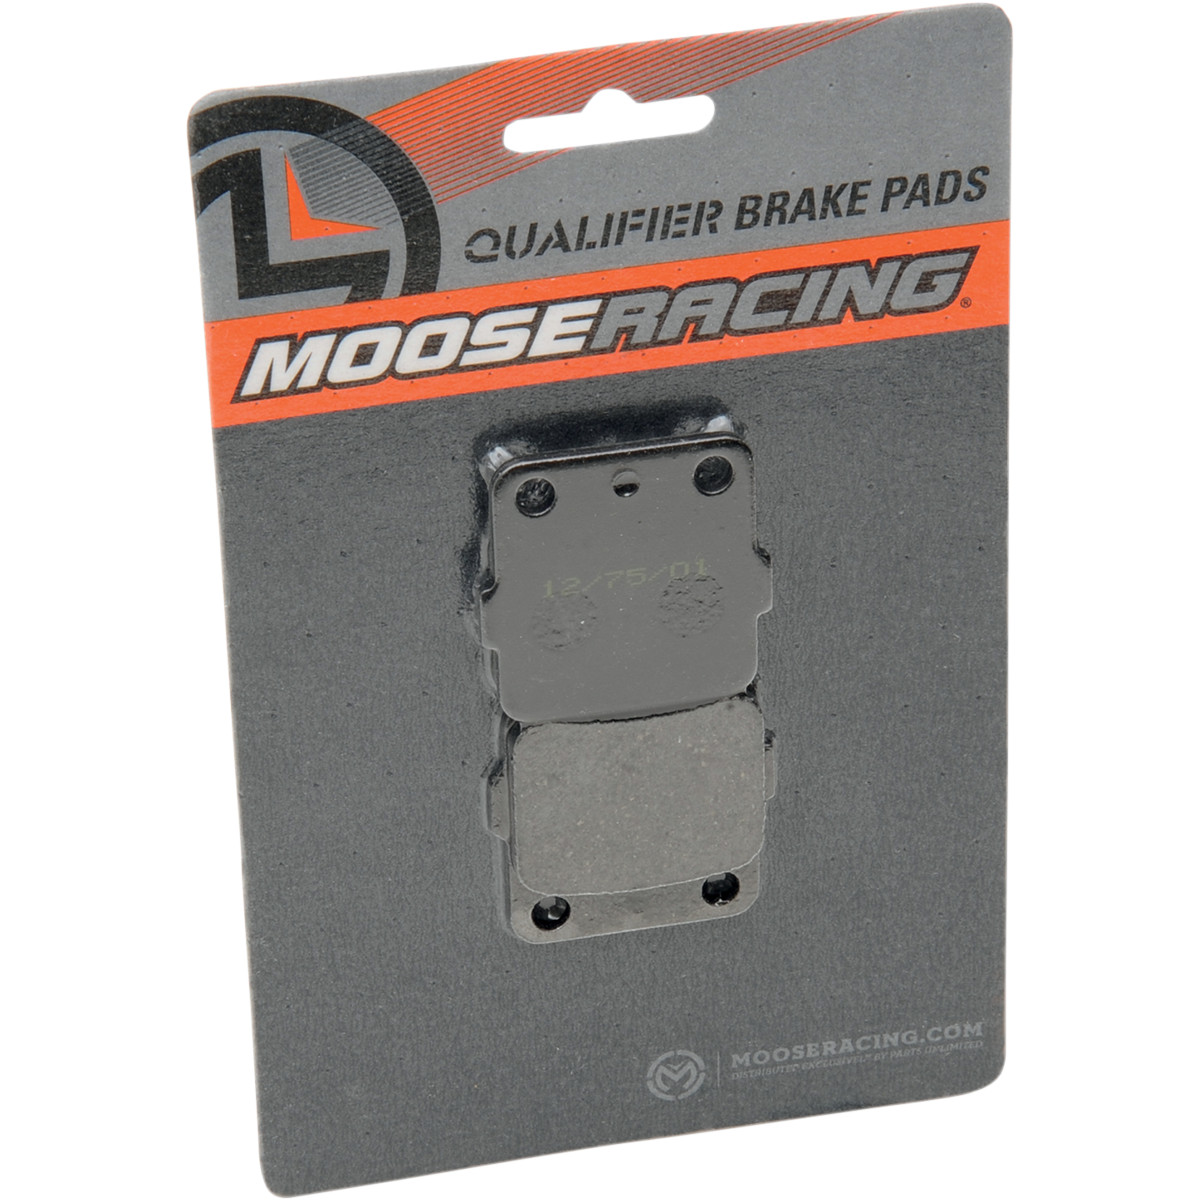 Moose Racing Qualifier Brake Pads Rear Fits 98-04 Polaris Scrambler 500 4x4